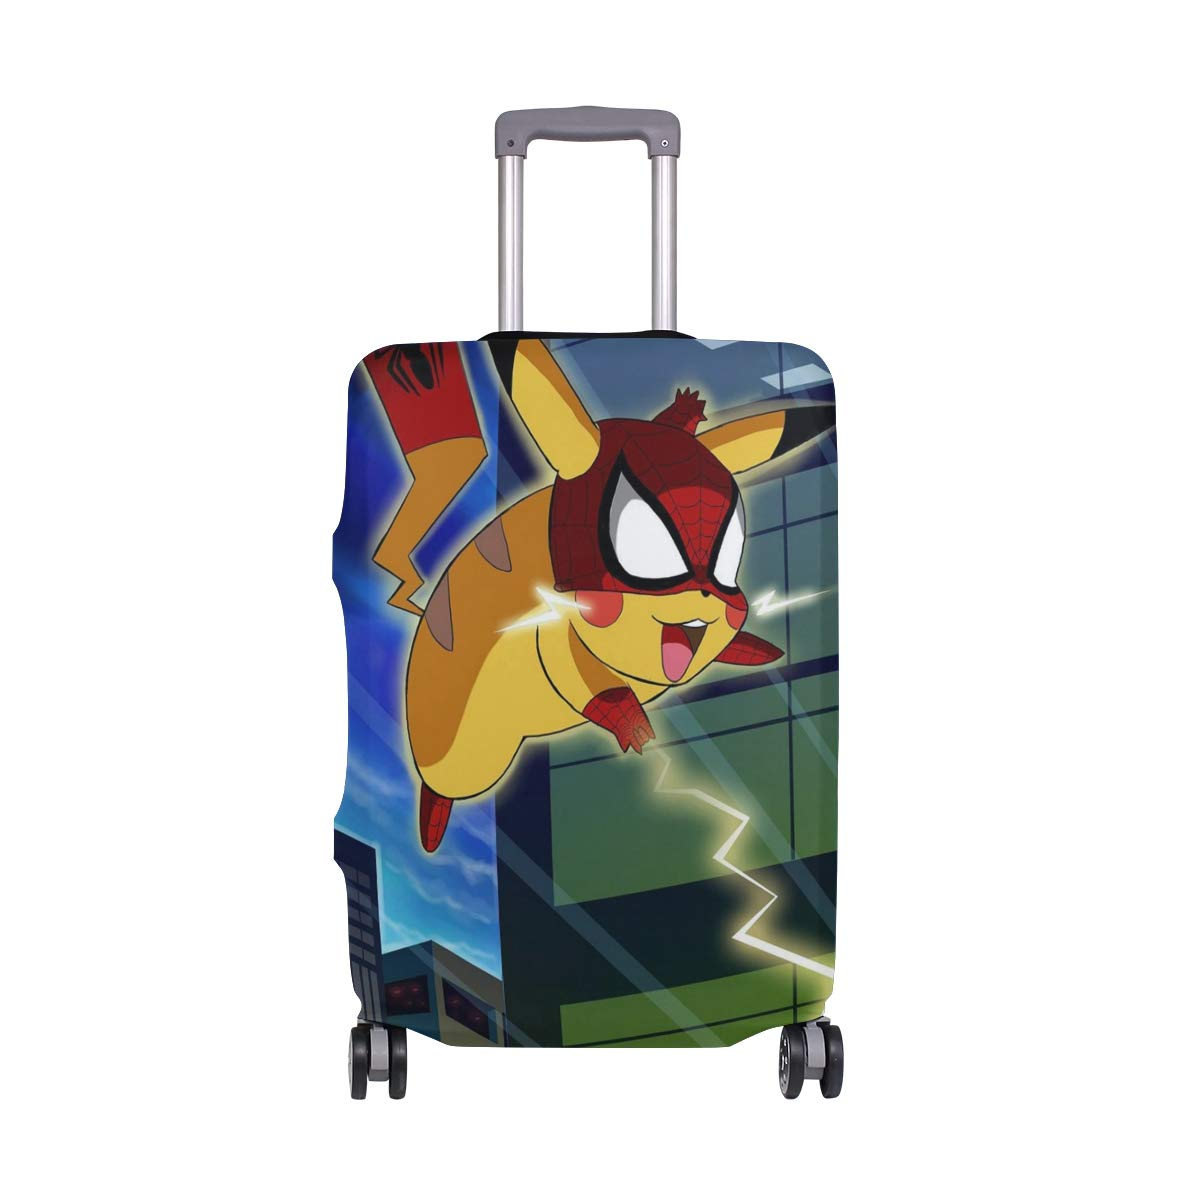 Cartoon Pikachu Spiderman Superhero Pikaspider Travel Luggage Cover Suitcase Protector Fits 26-28 Inch Washable Baggage Covers